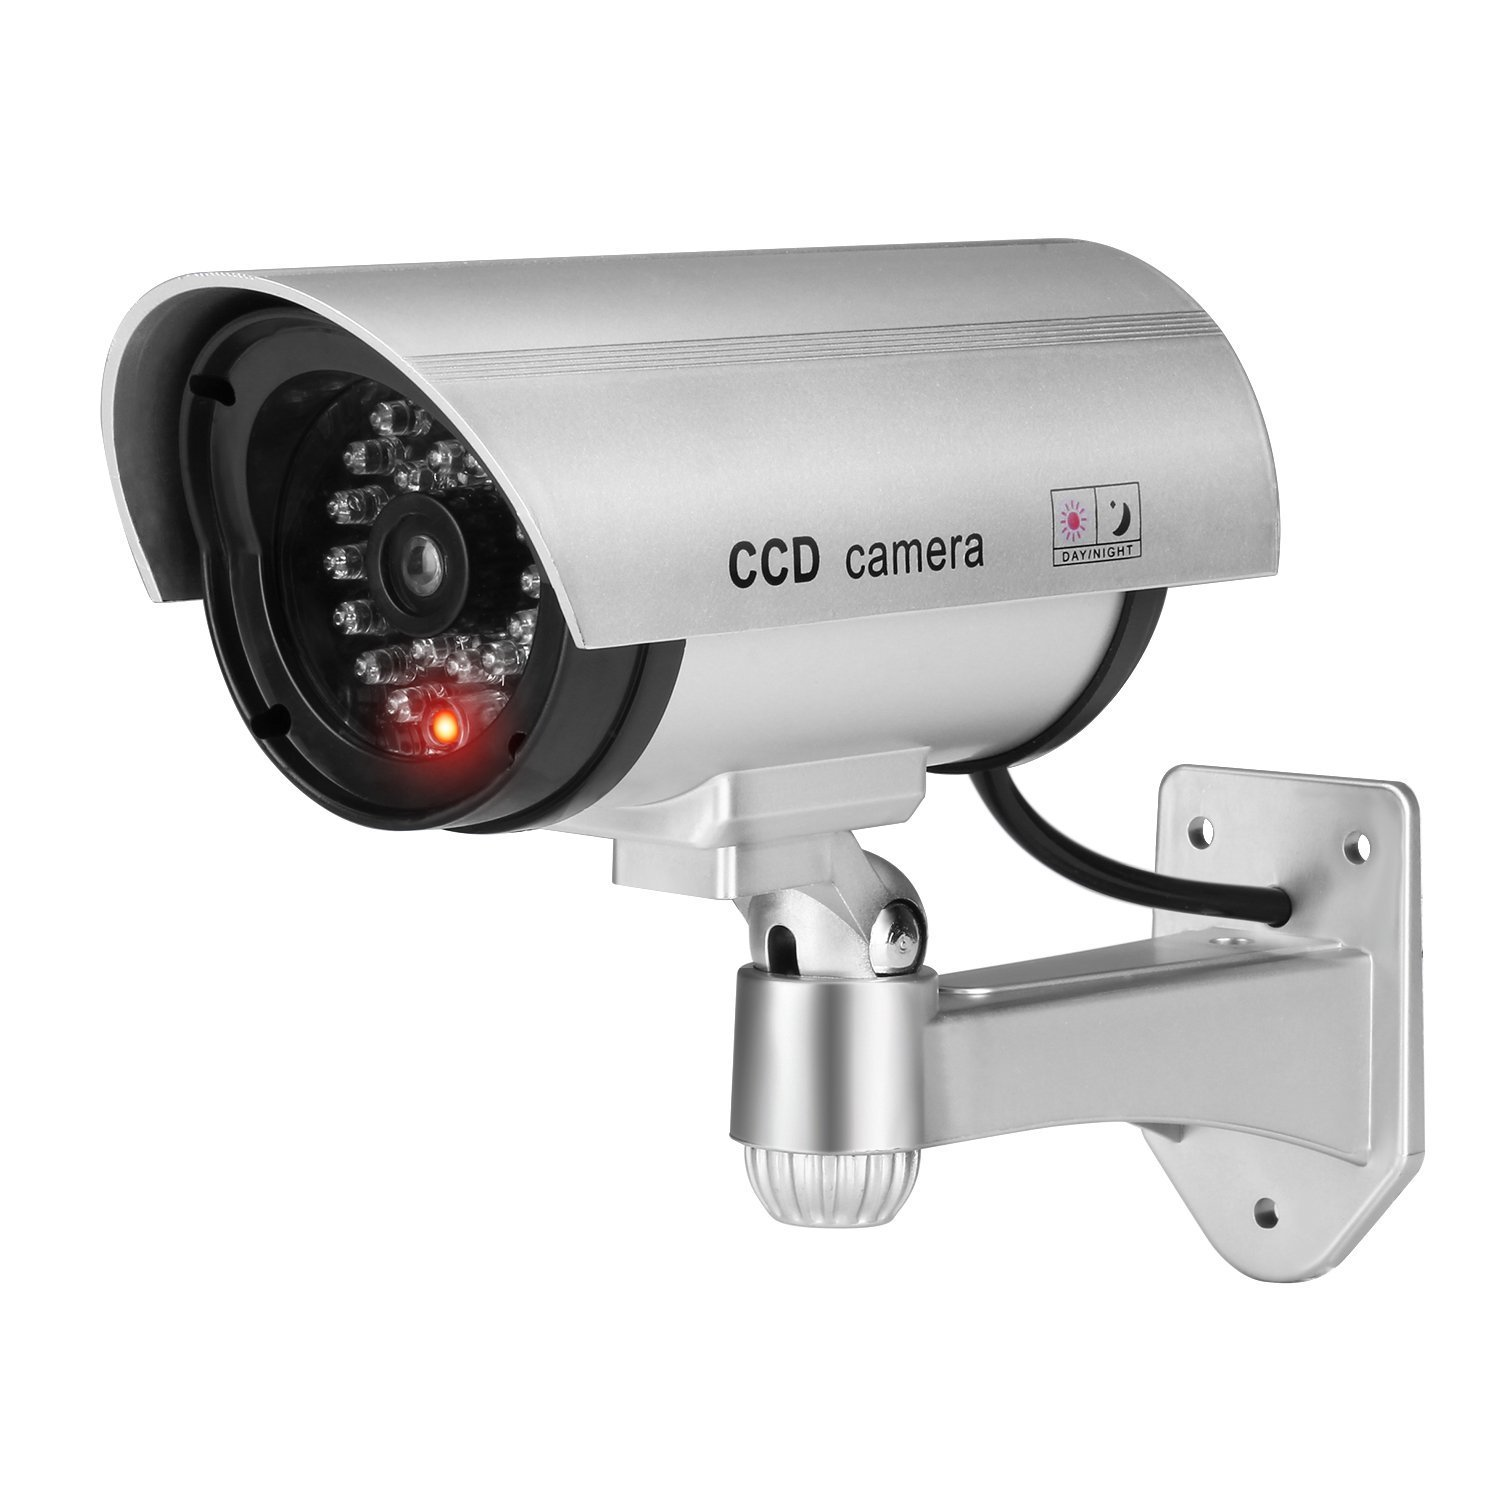 Dummy Security Camera Wireless, Fake Camera CCTV Surveillance System with Realistic Red Flashing Lights and Warning Sticker (1,Silver) by Equay